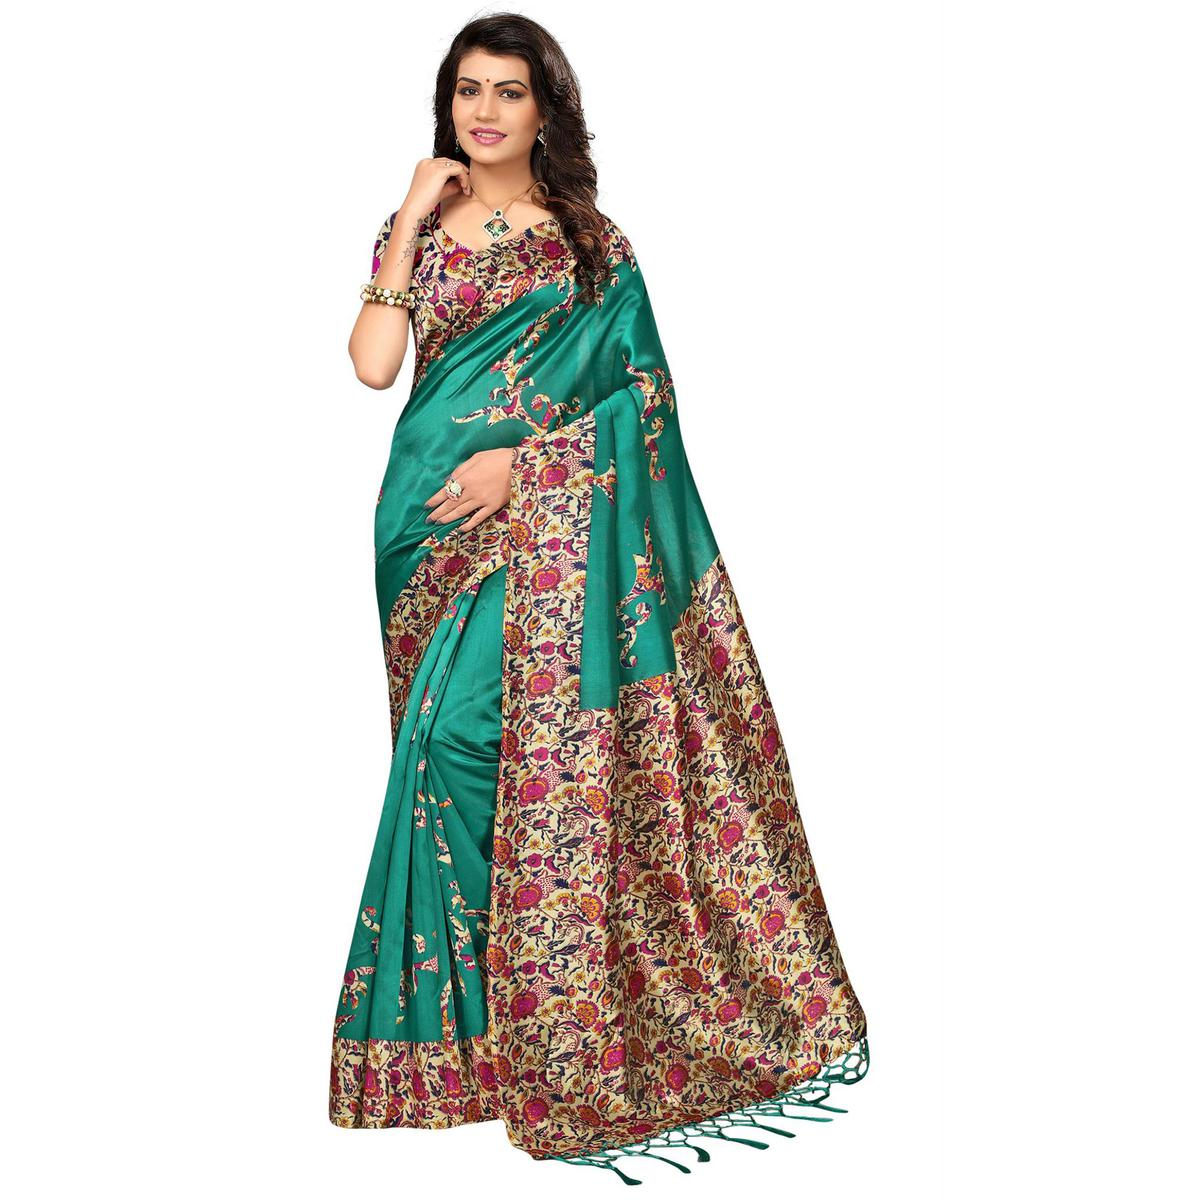 Classical Turquoise Green Colored Festive Wear Printed Mysore Art Silk Saree